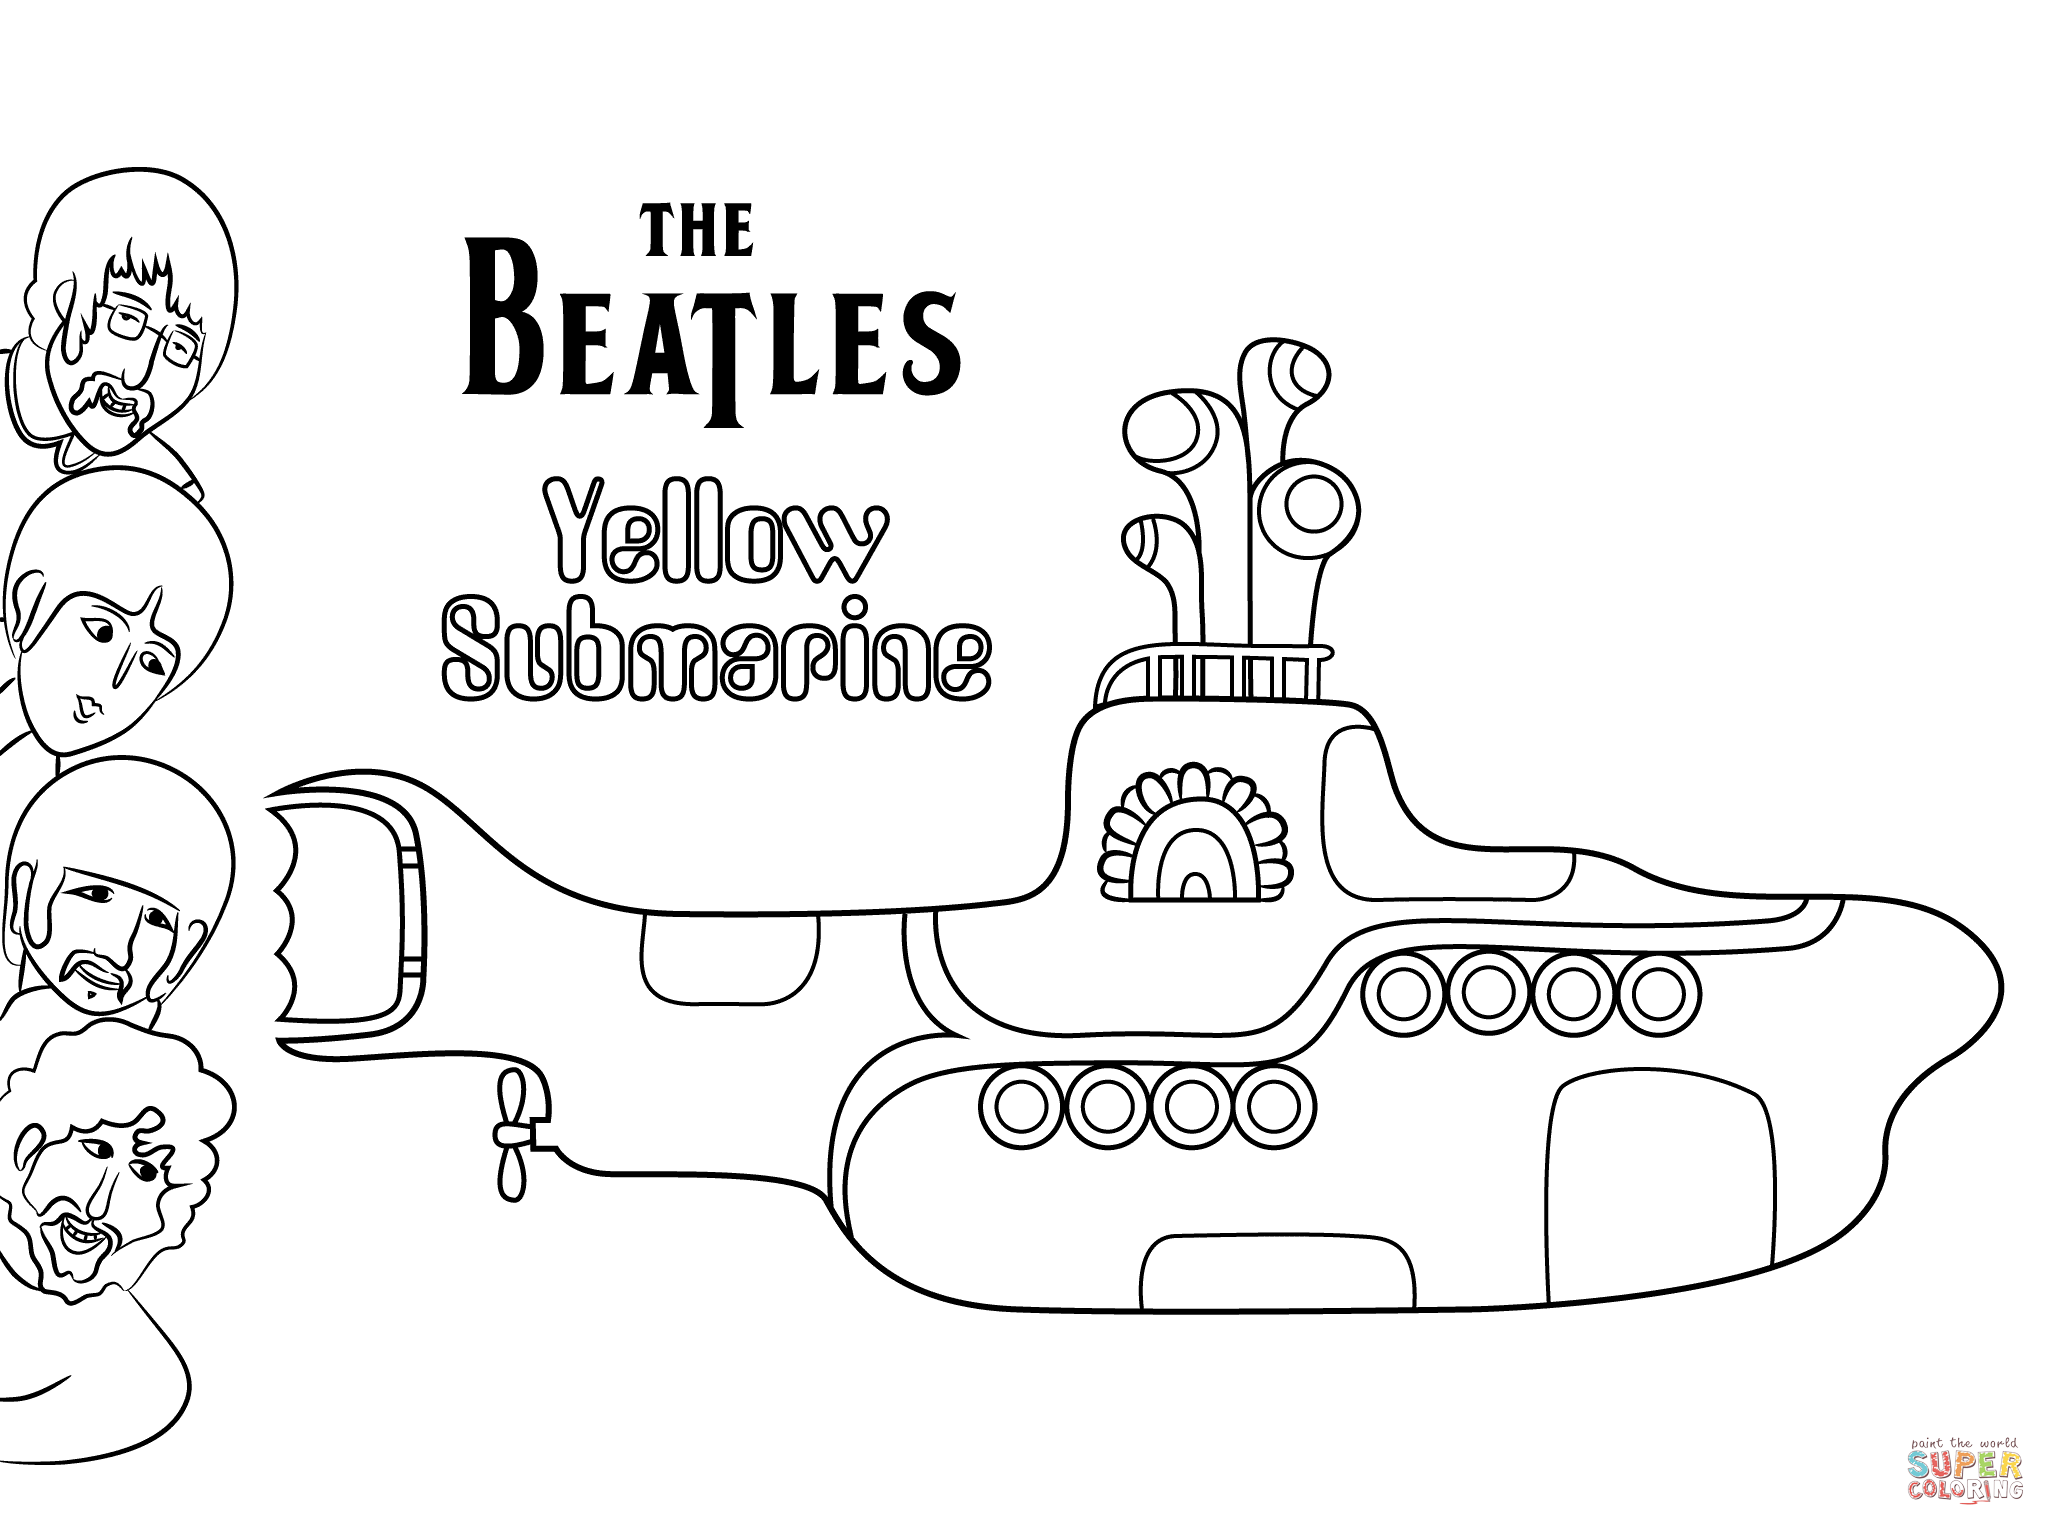 the beatles yellow submarine cover art coloring page free - Submarine Coloring Pages Print